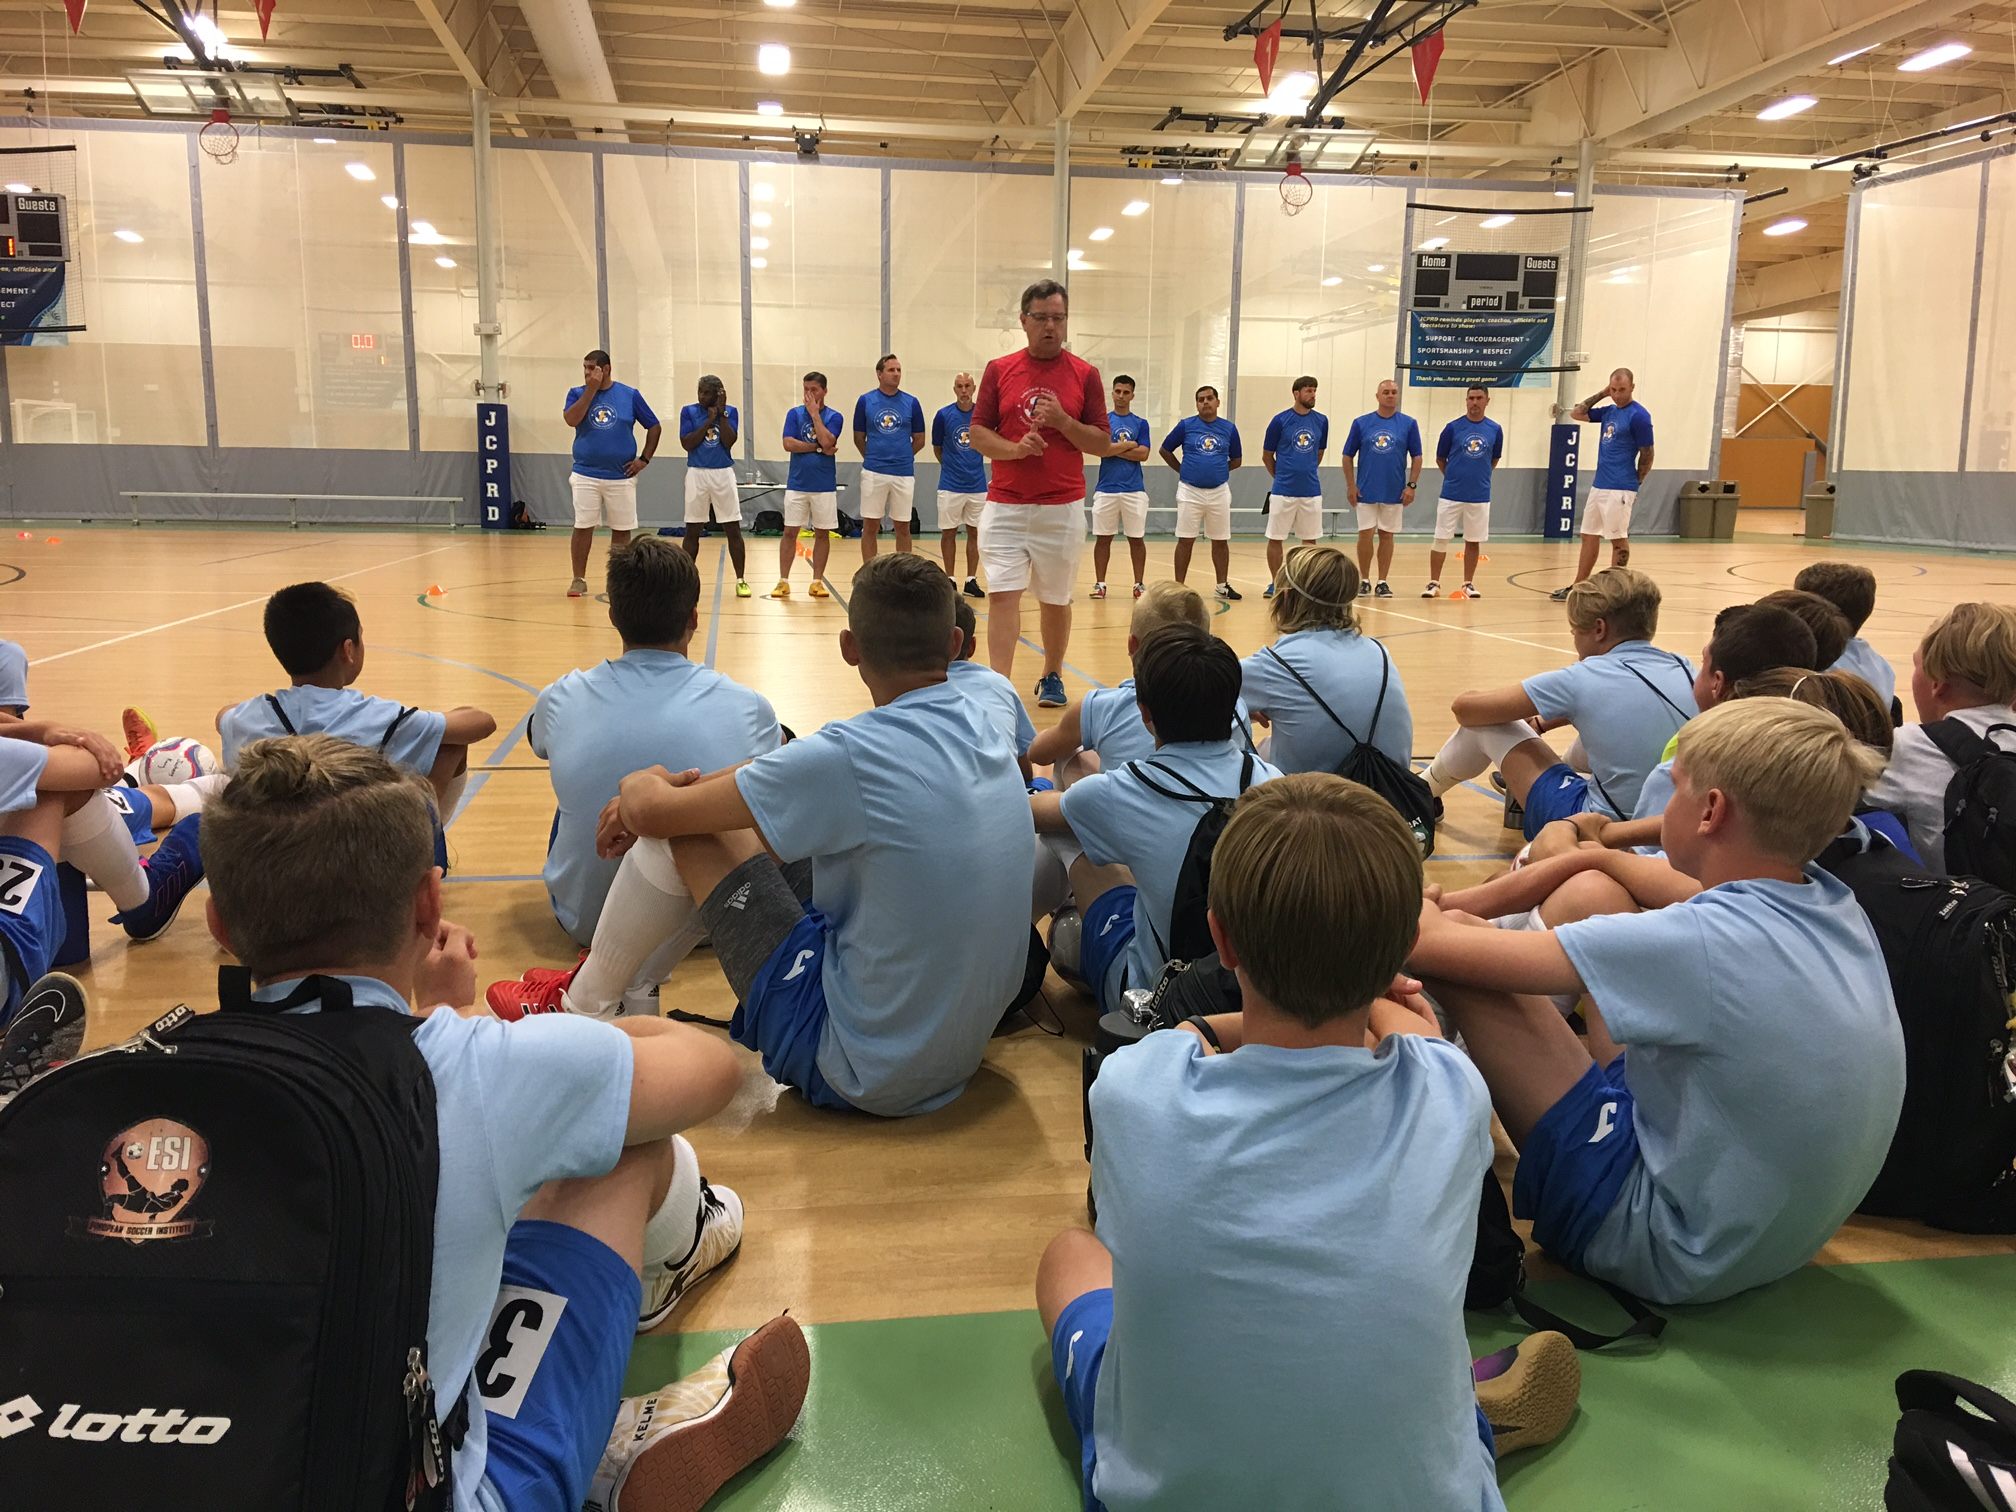 Landon Pennell makes final round of selection for US National Futsal team